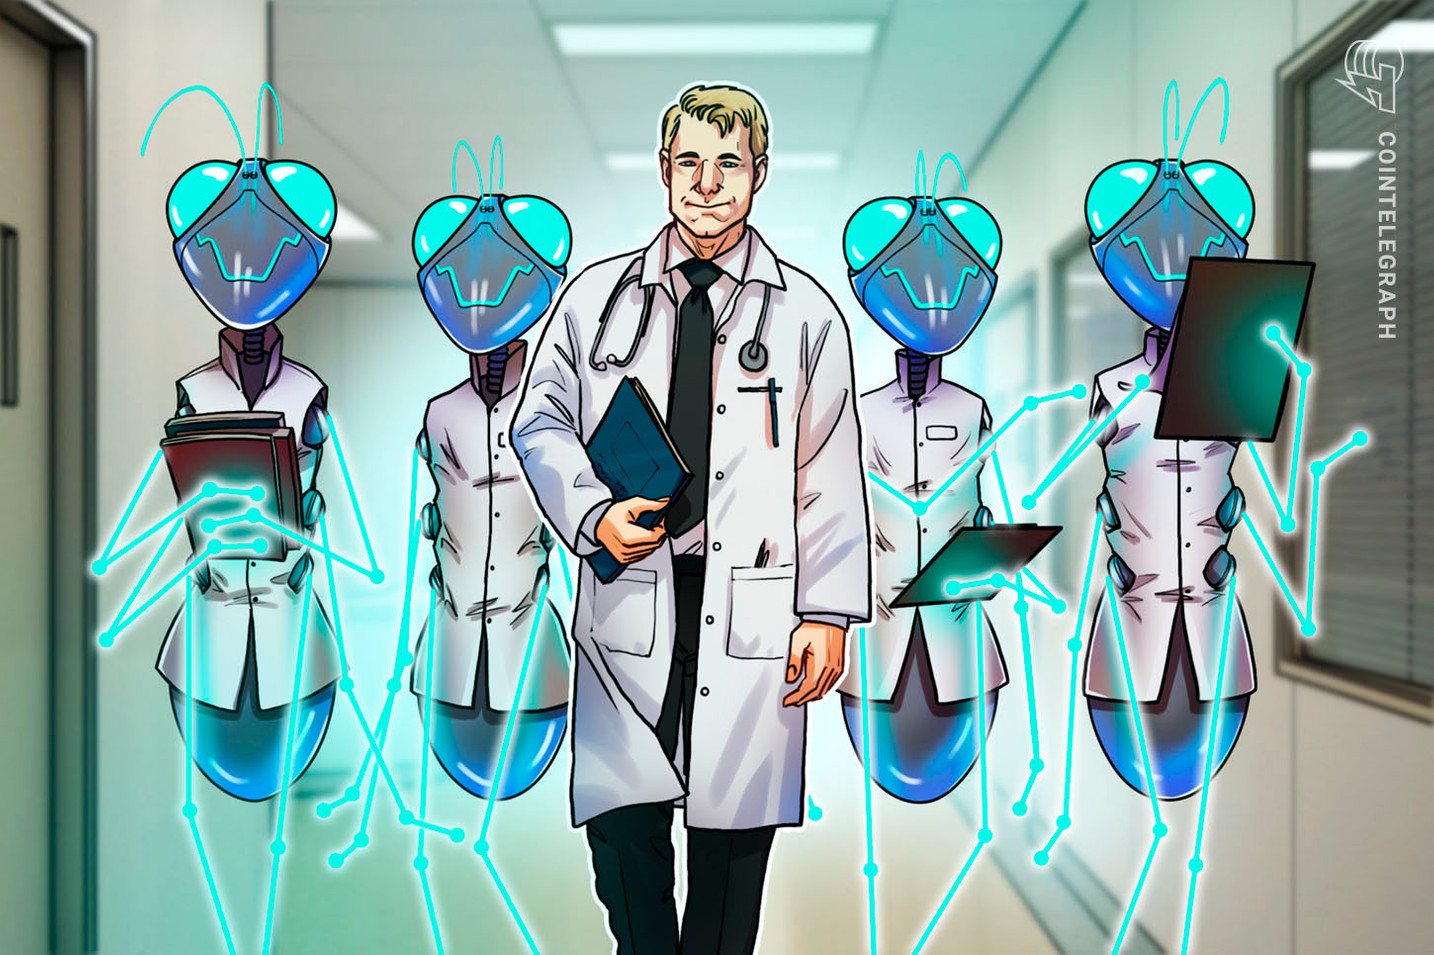 Cyprus Hospital Ready to Store COVID-19 Test Results on Blockchain